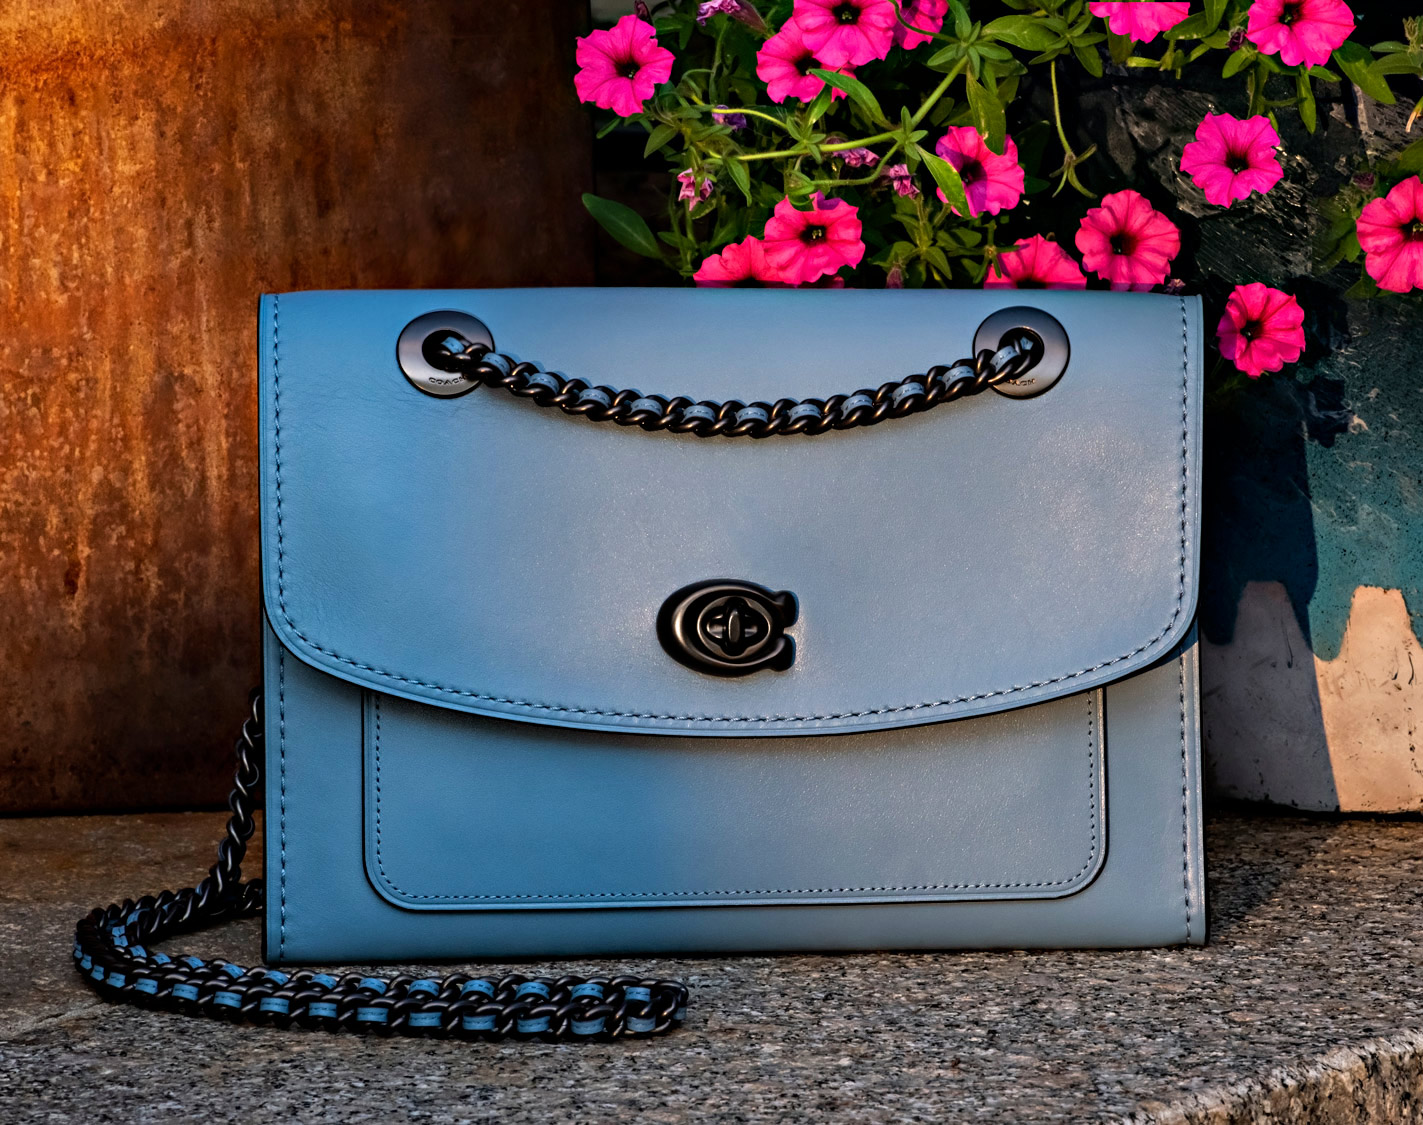 photography for fashion of coach purse